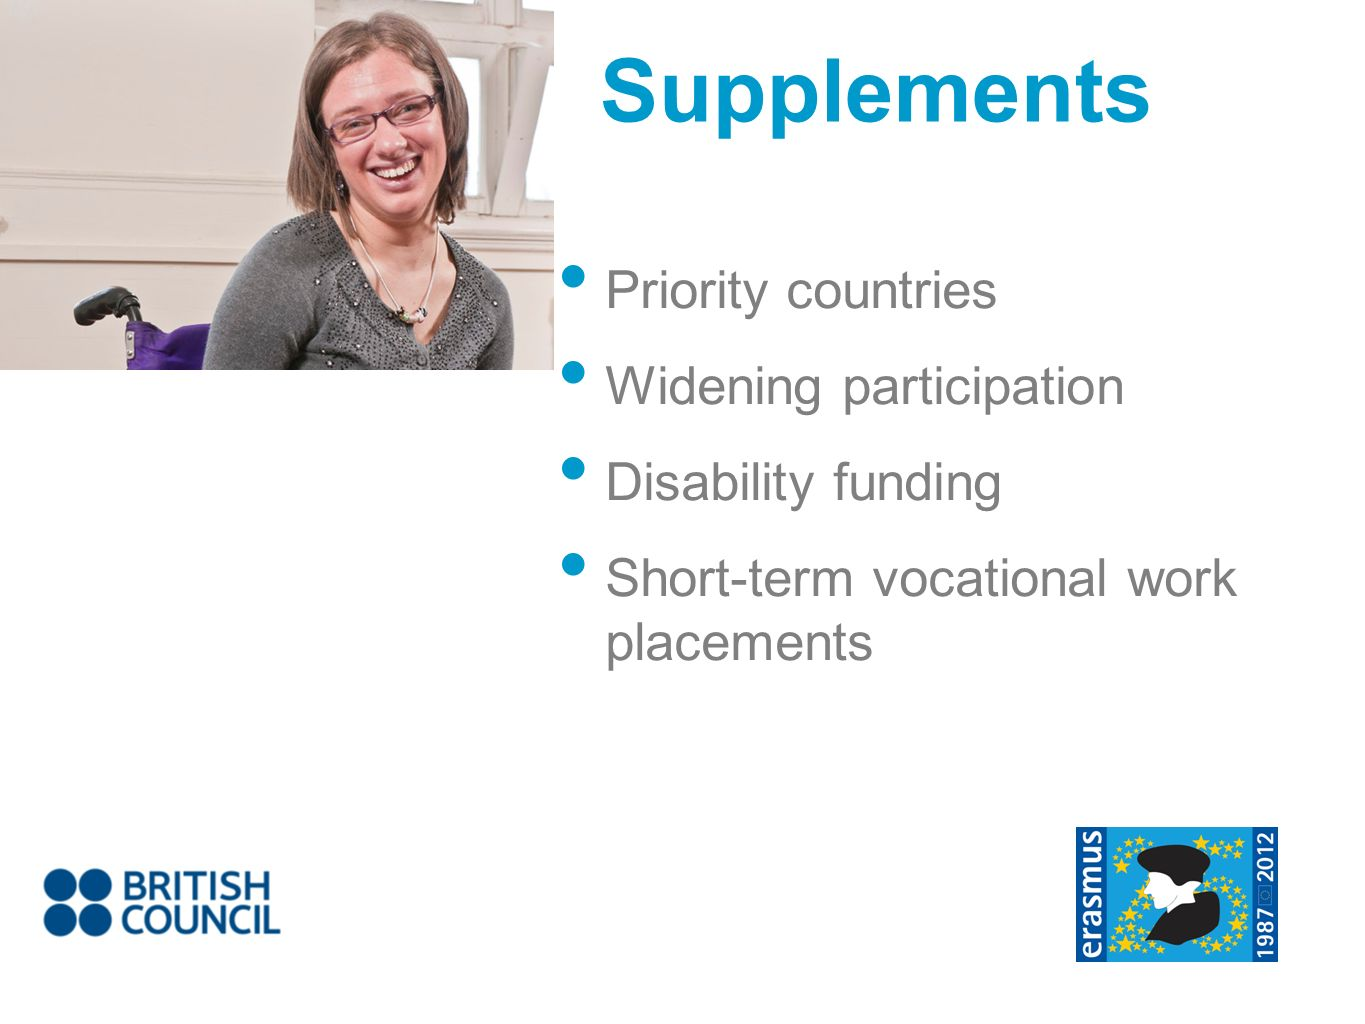 Supplements Priority countries Widening participation Disability funding Short-term vocational work placements